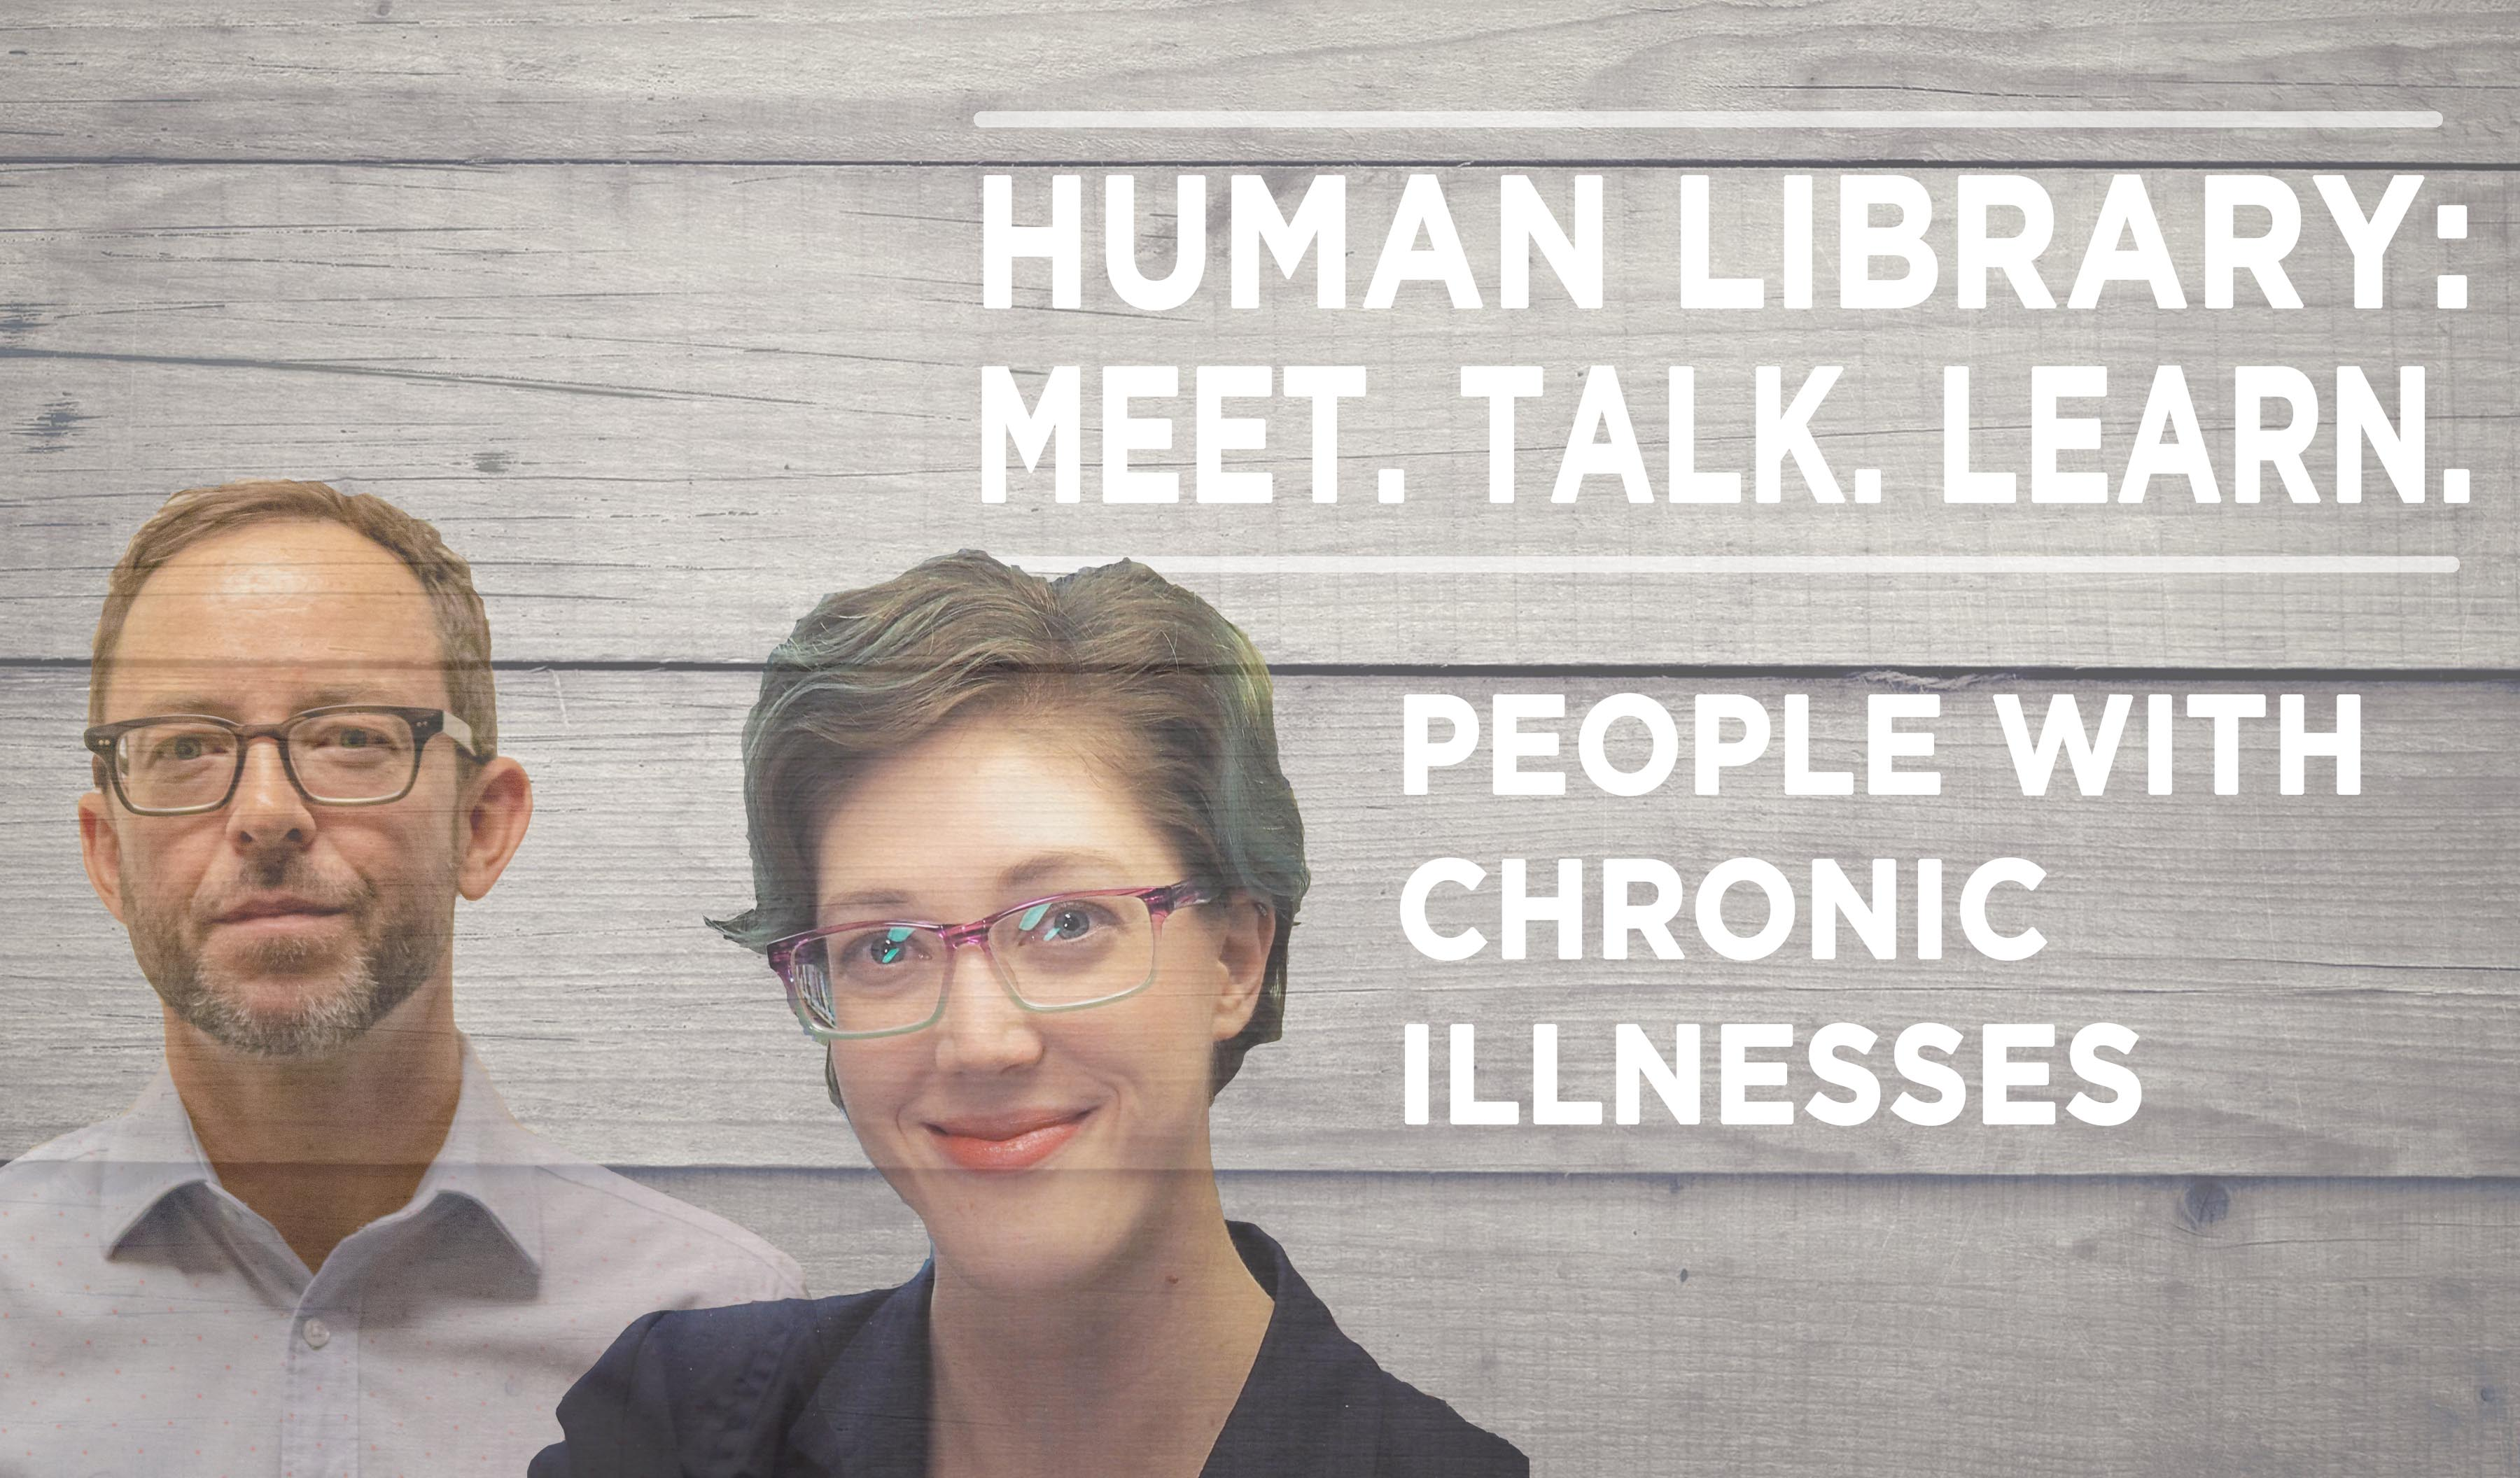 Human Library Logo2 - Chronic Illness